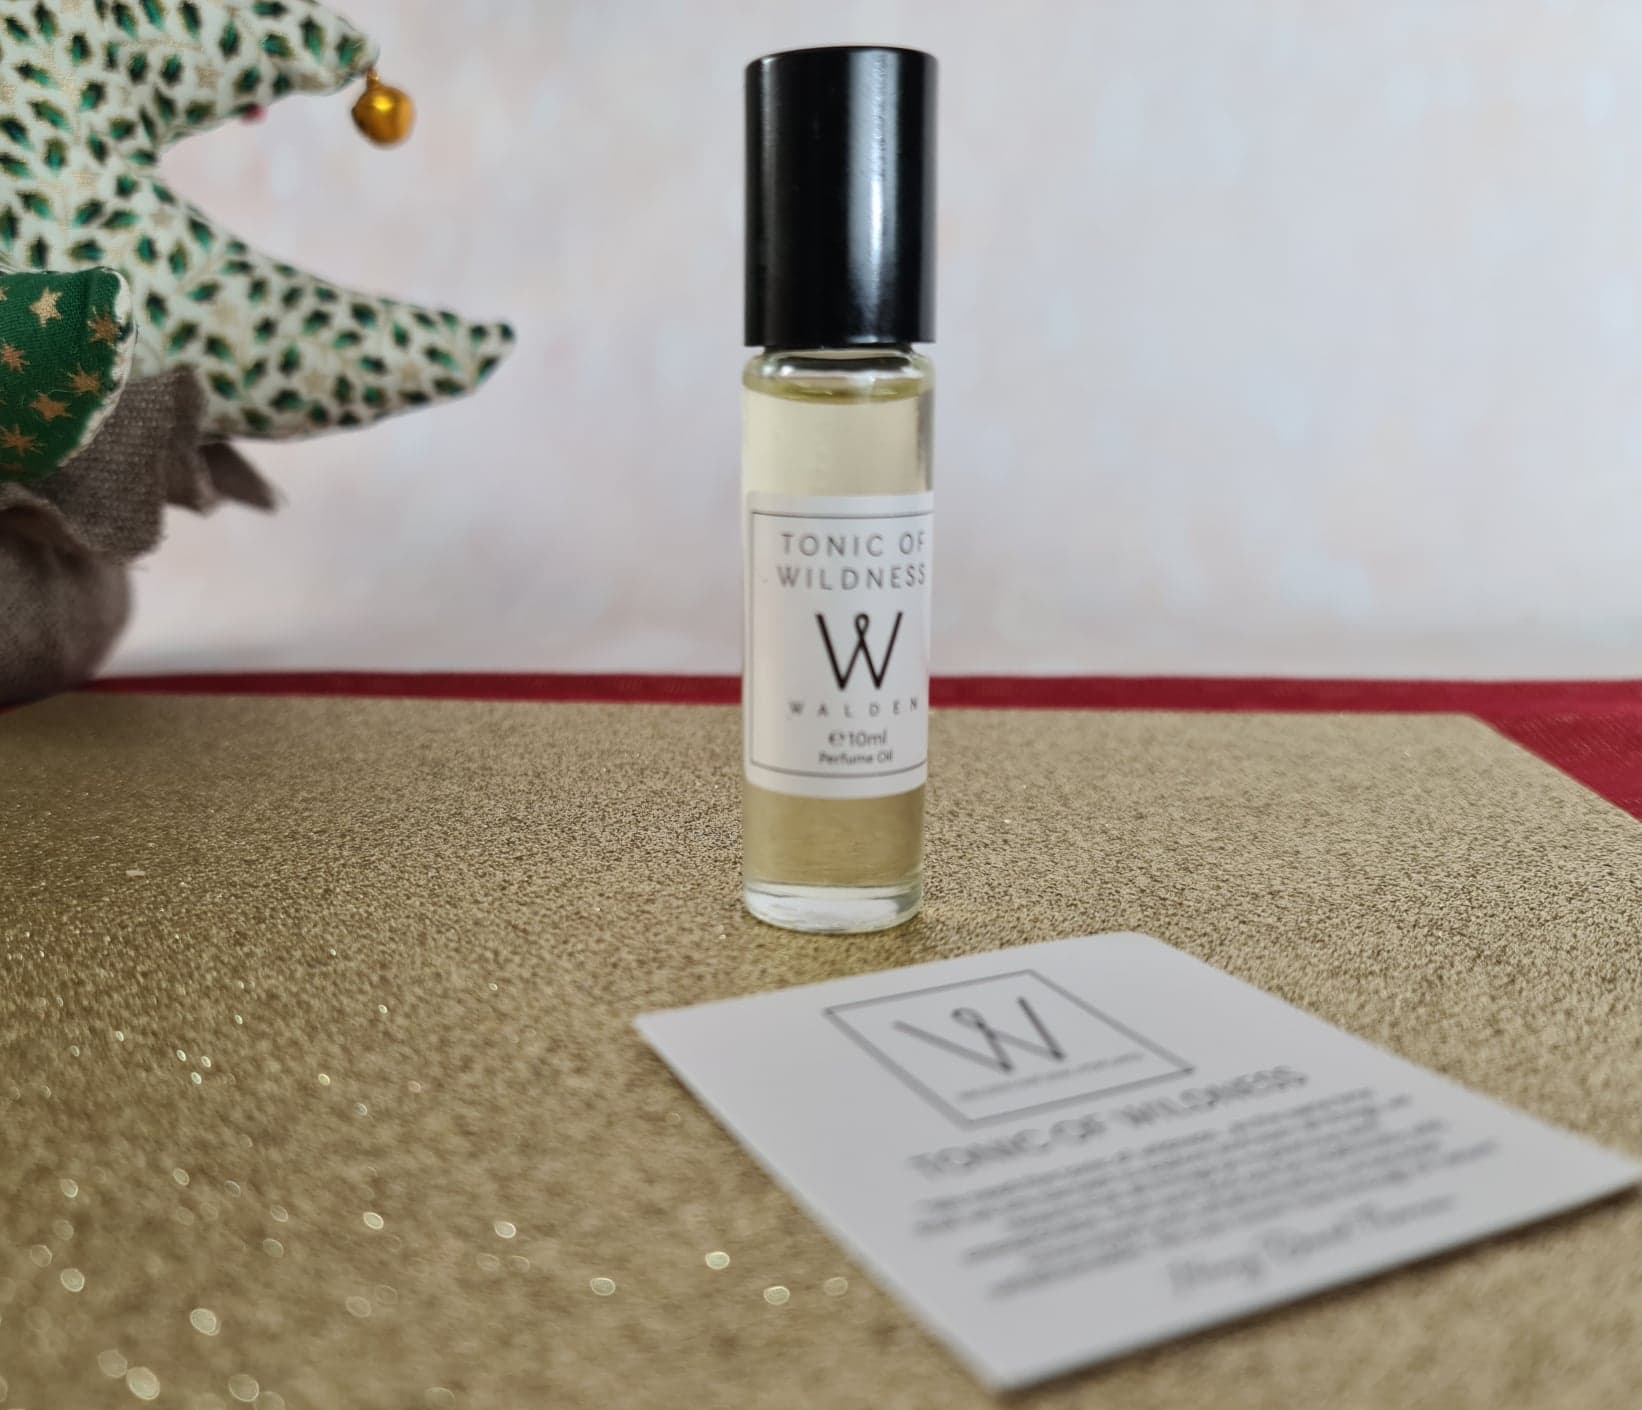 Walden 'Tonic of Wildness' Natural Perfume Oil